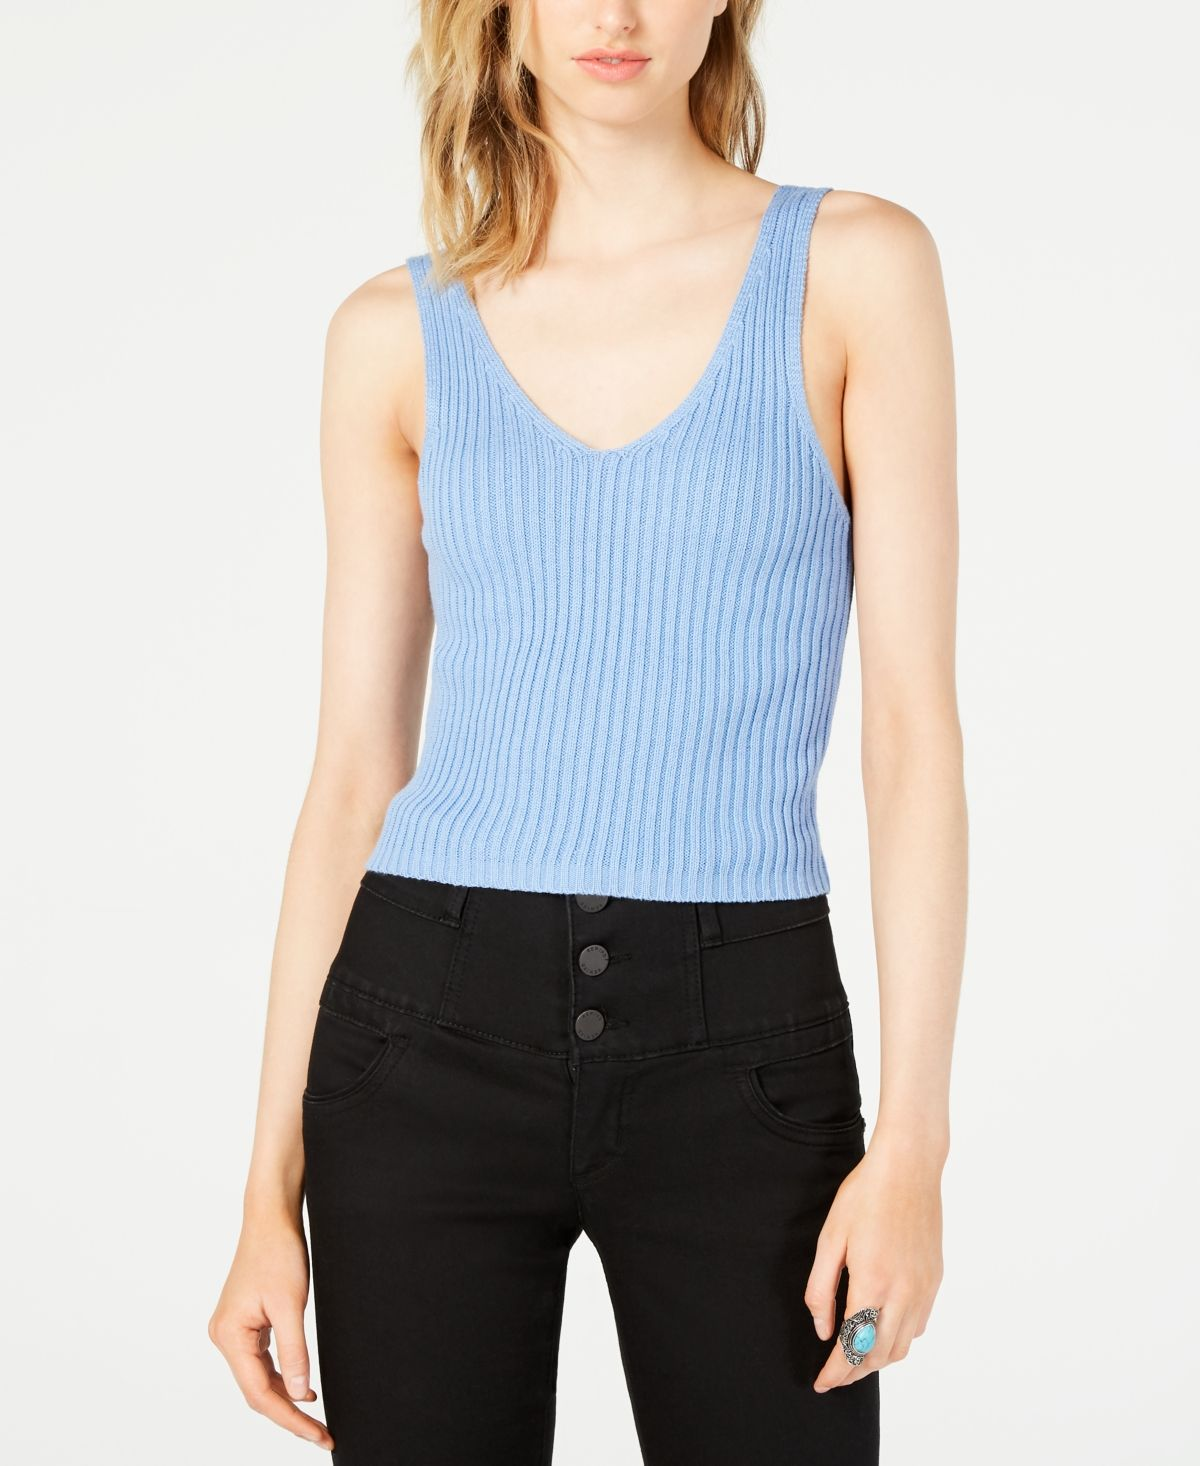 New Womens Ladies V Neck Ribbed Strappy Knitted Sleeveless Bralet Crop Vest Top